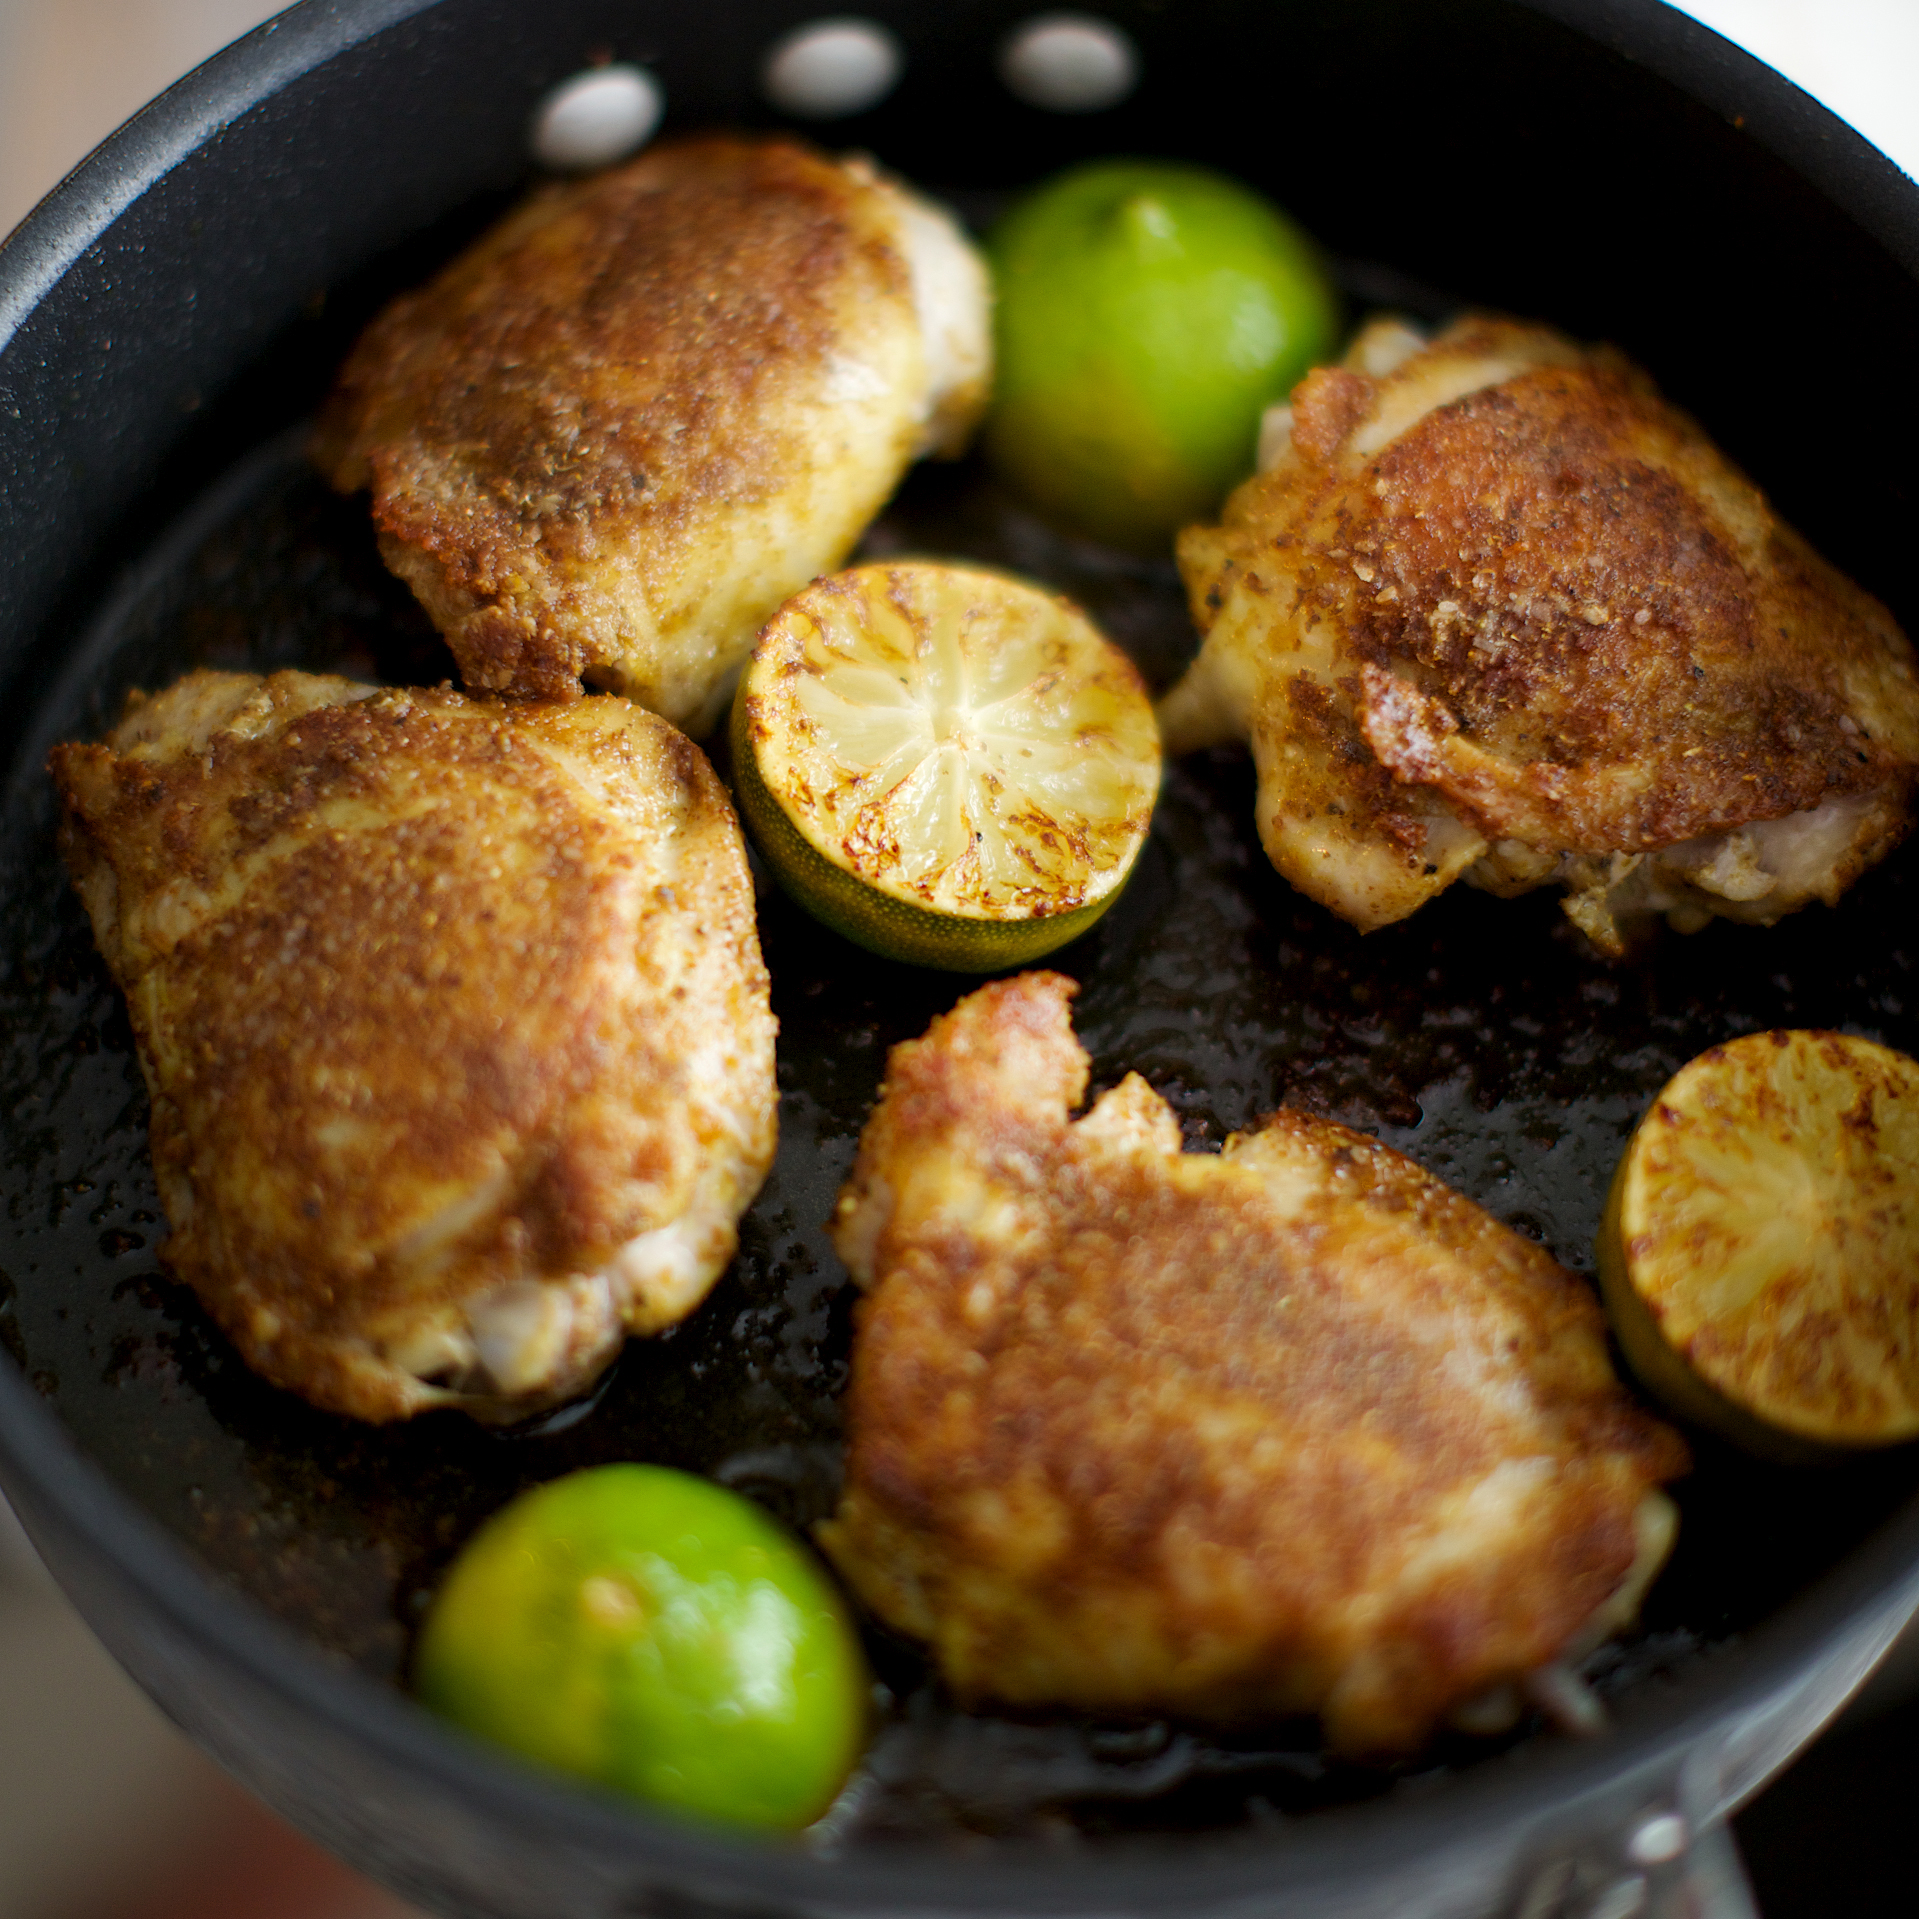 201408-r-pan-roasted-curried-chicken-thighs.jpg